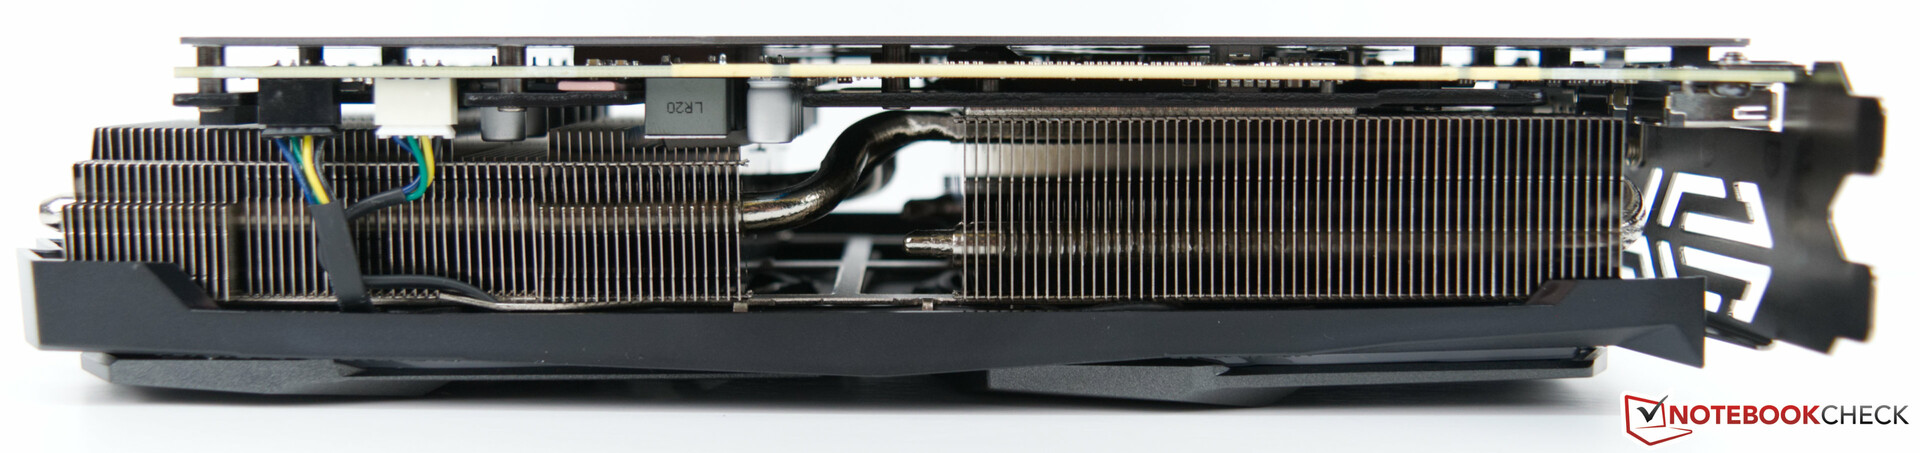 MSI RTX 2060 Gaming Z 6G Desktop Graphics Card Review